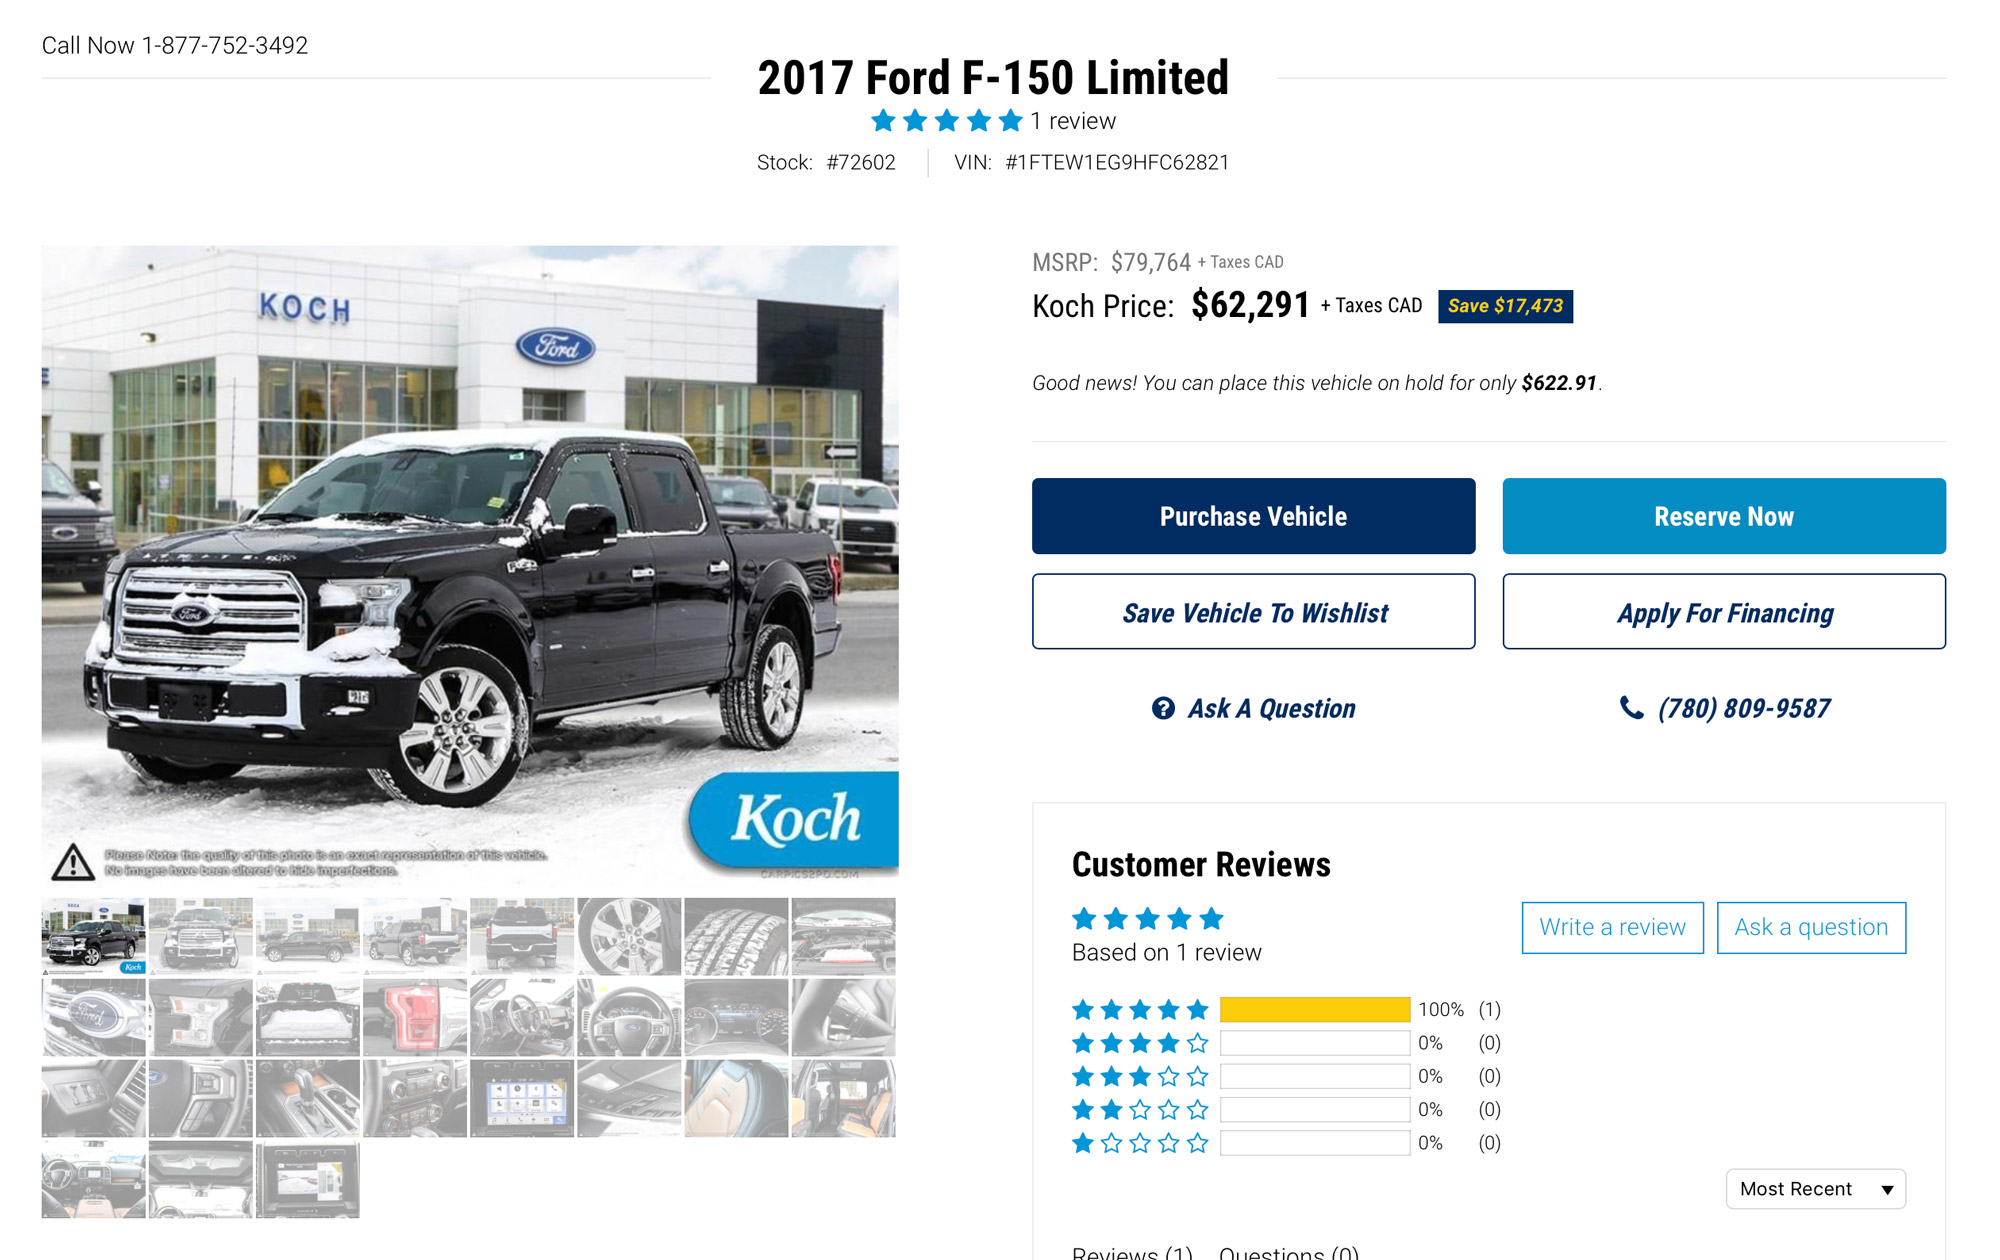 Koch Ford purchase options